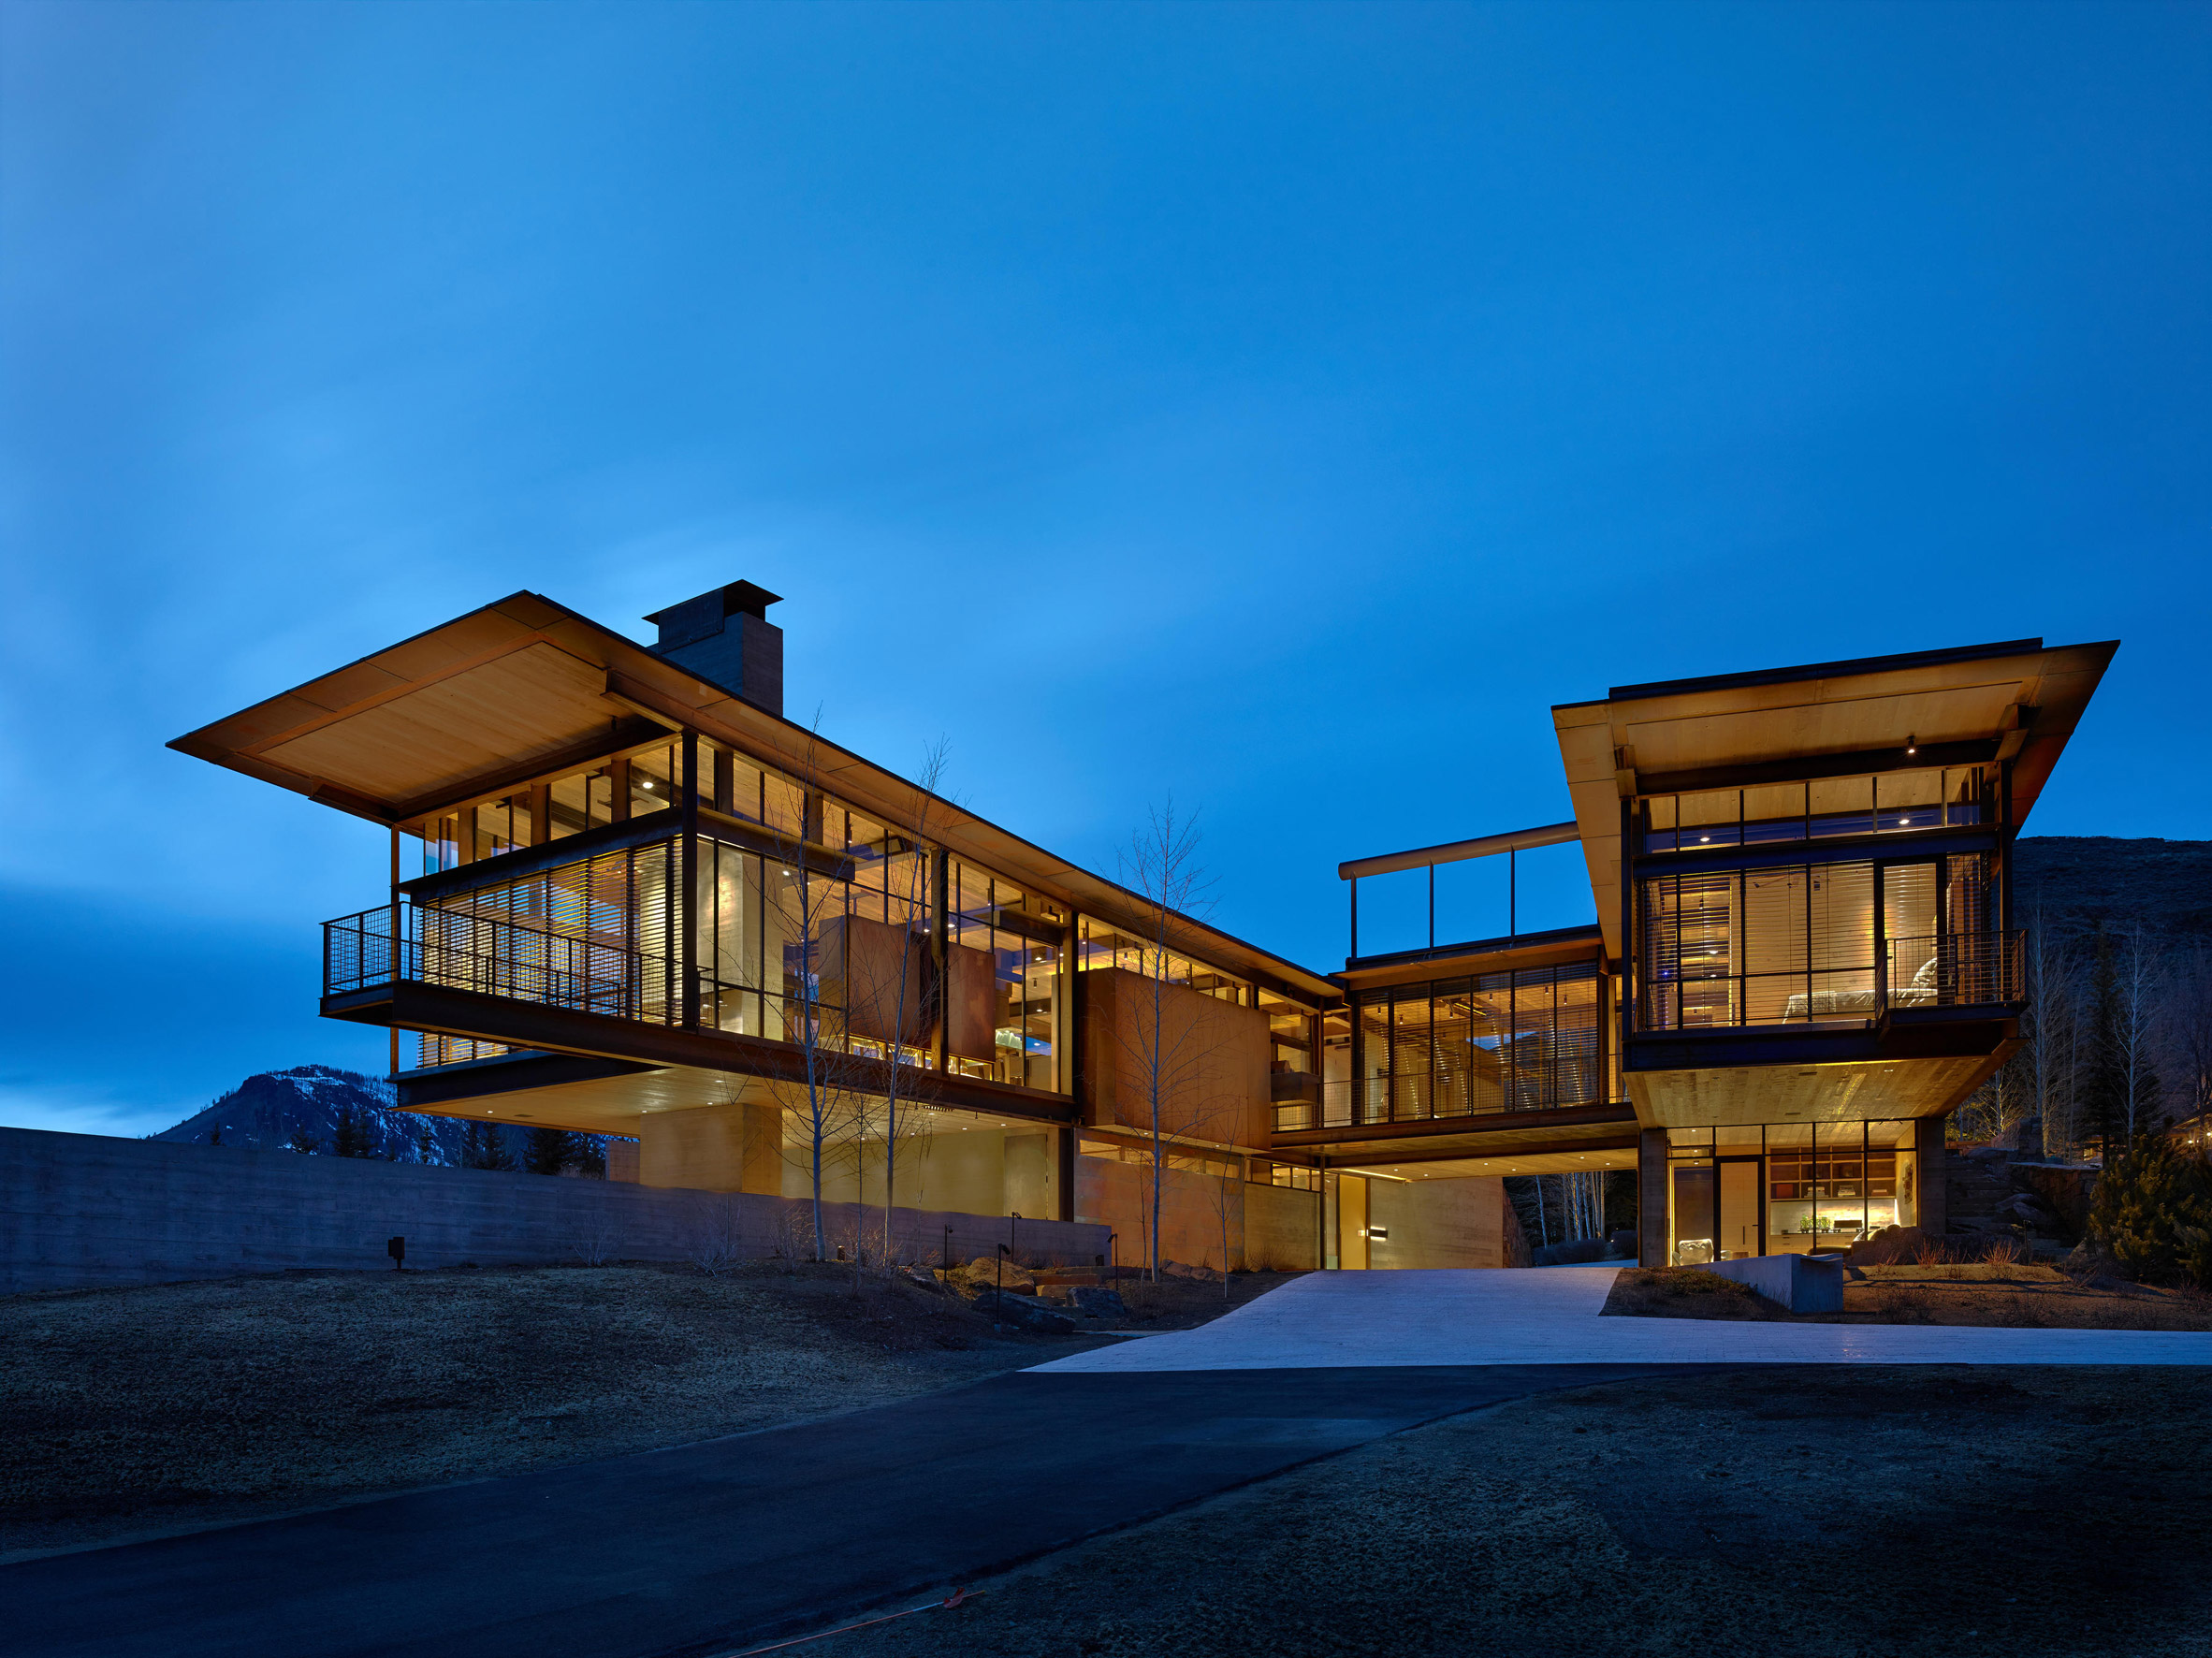 Rural Idaho home by Olson Kundig has gadgets and gizmos aplenty